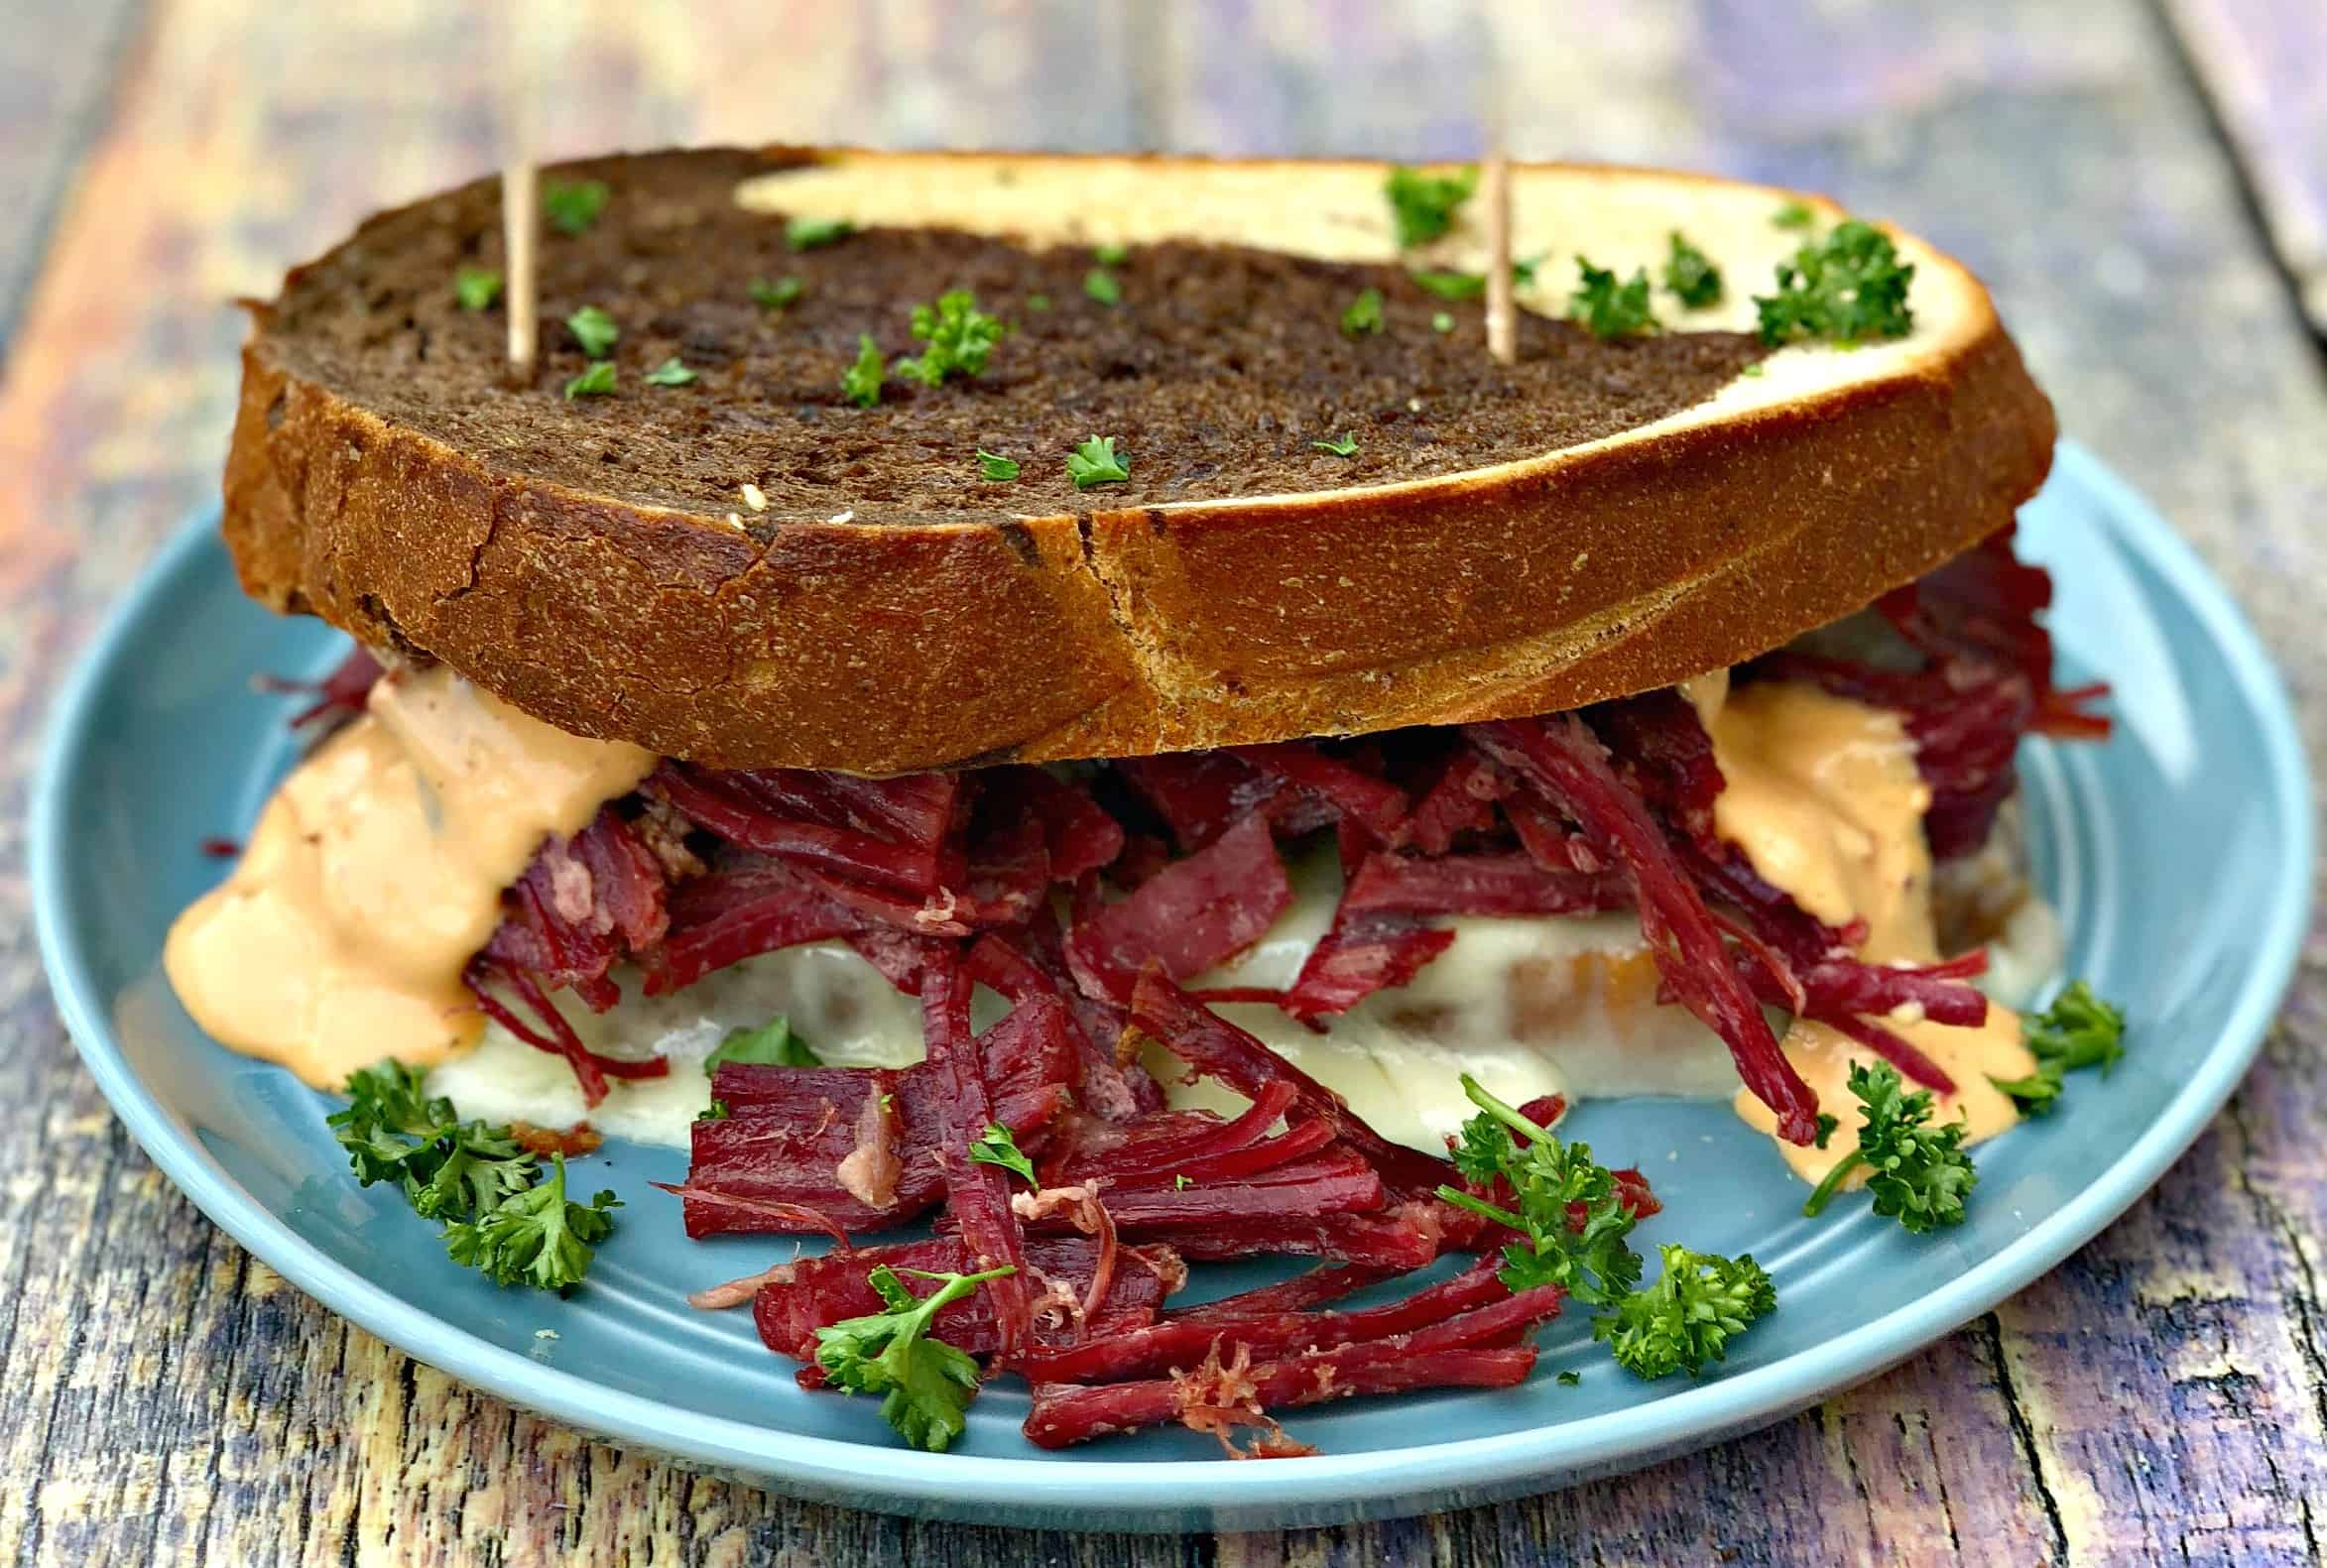 close up of Instant Pot Corned Beef Reuben Sandwich with rye bread, sauerkraut, and thousand island dressing on a blue plate